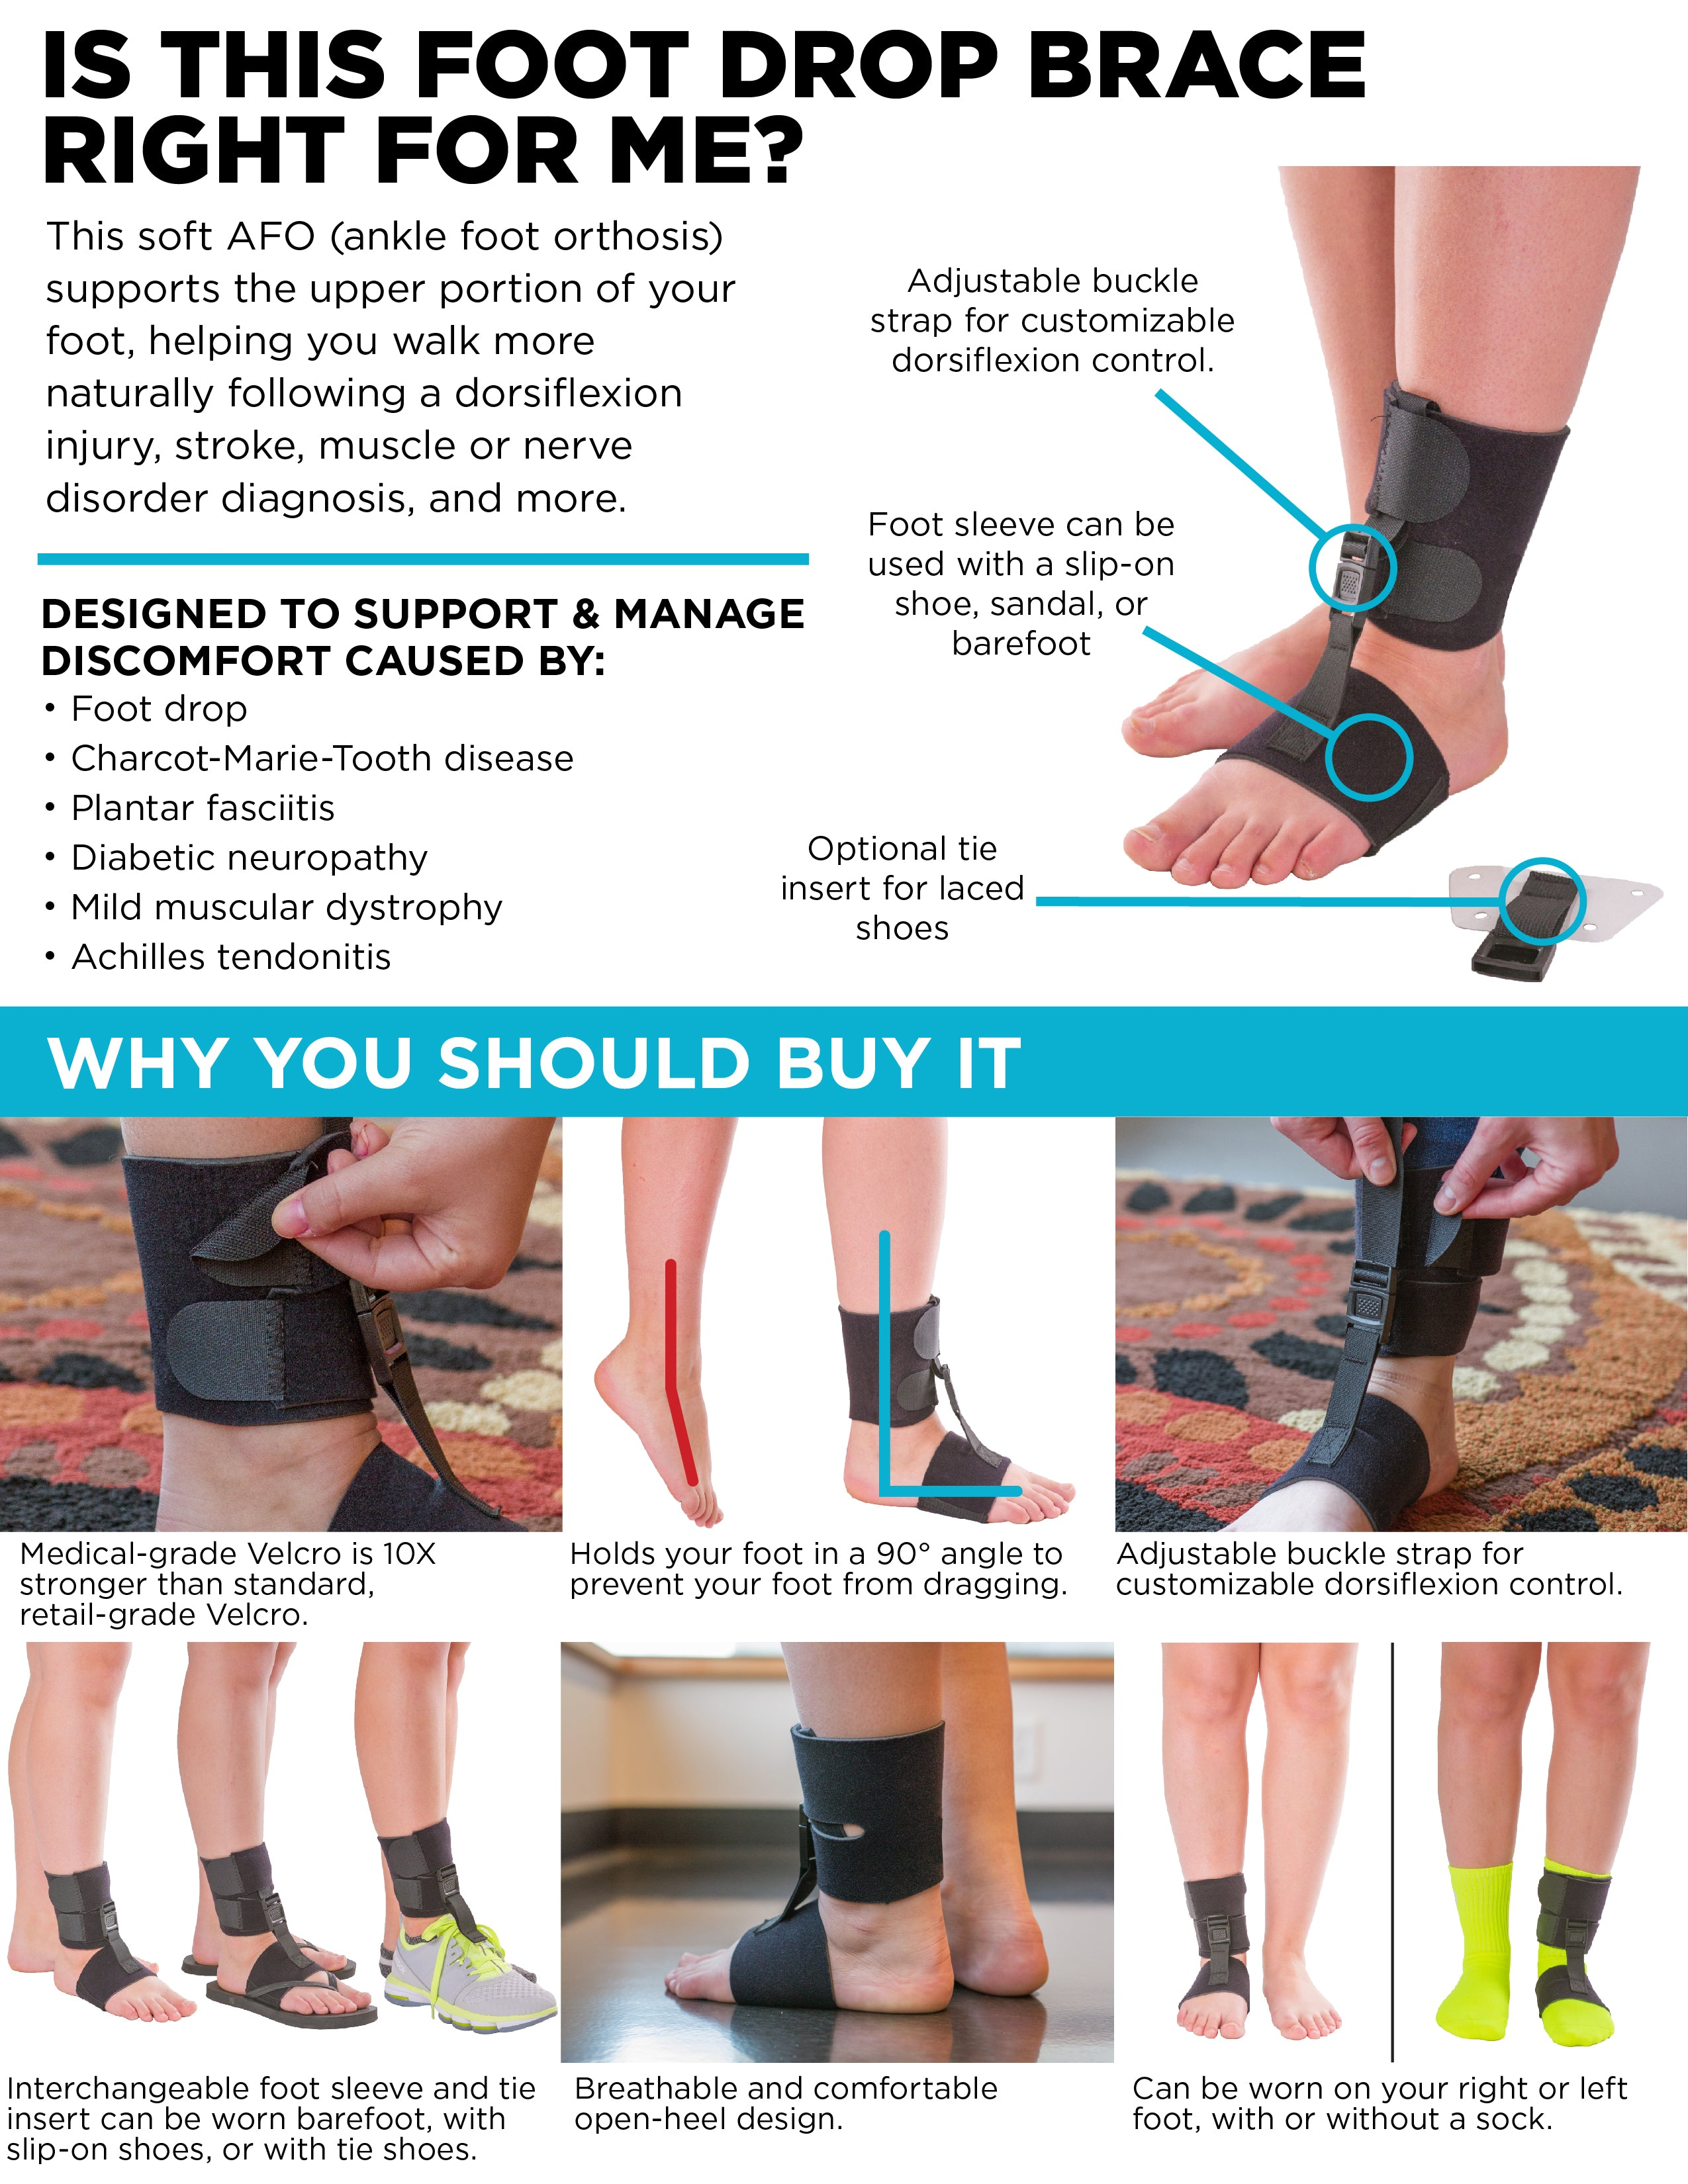 Key features and benefits of this soft dorsiflexion assist support for drop foot.